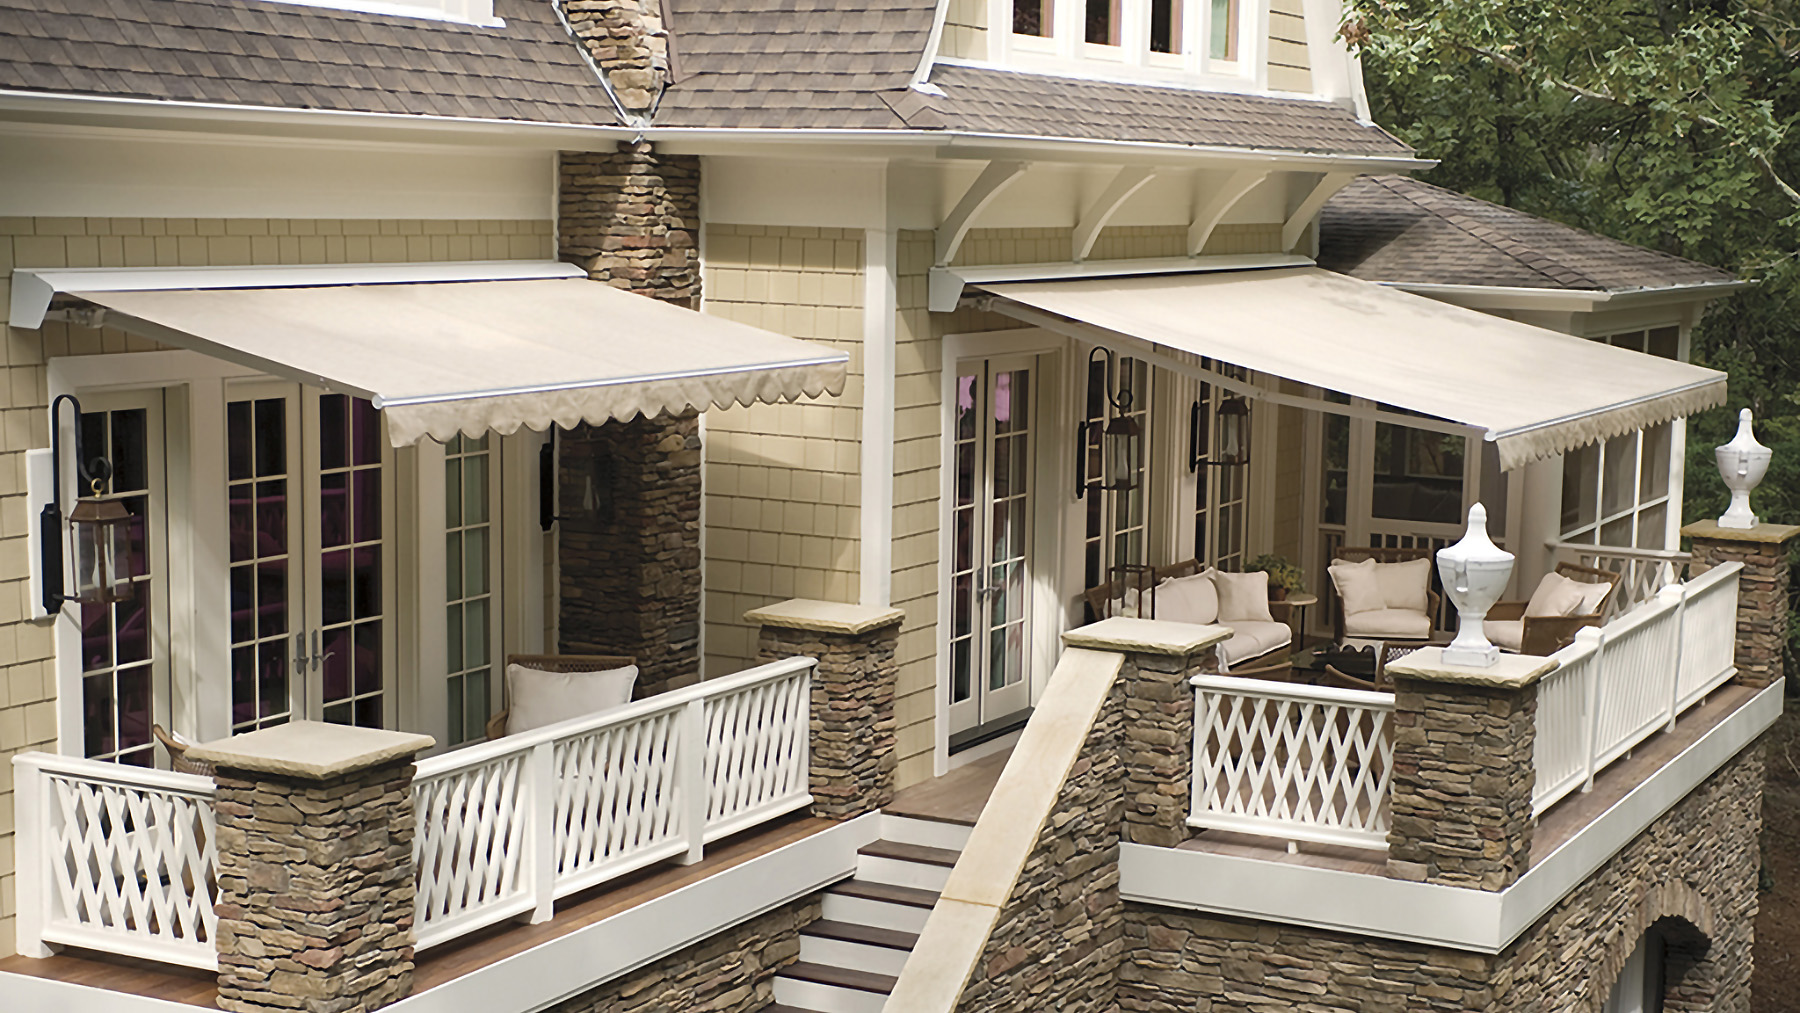 Retractable Awnings in Indianapolis